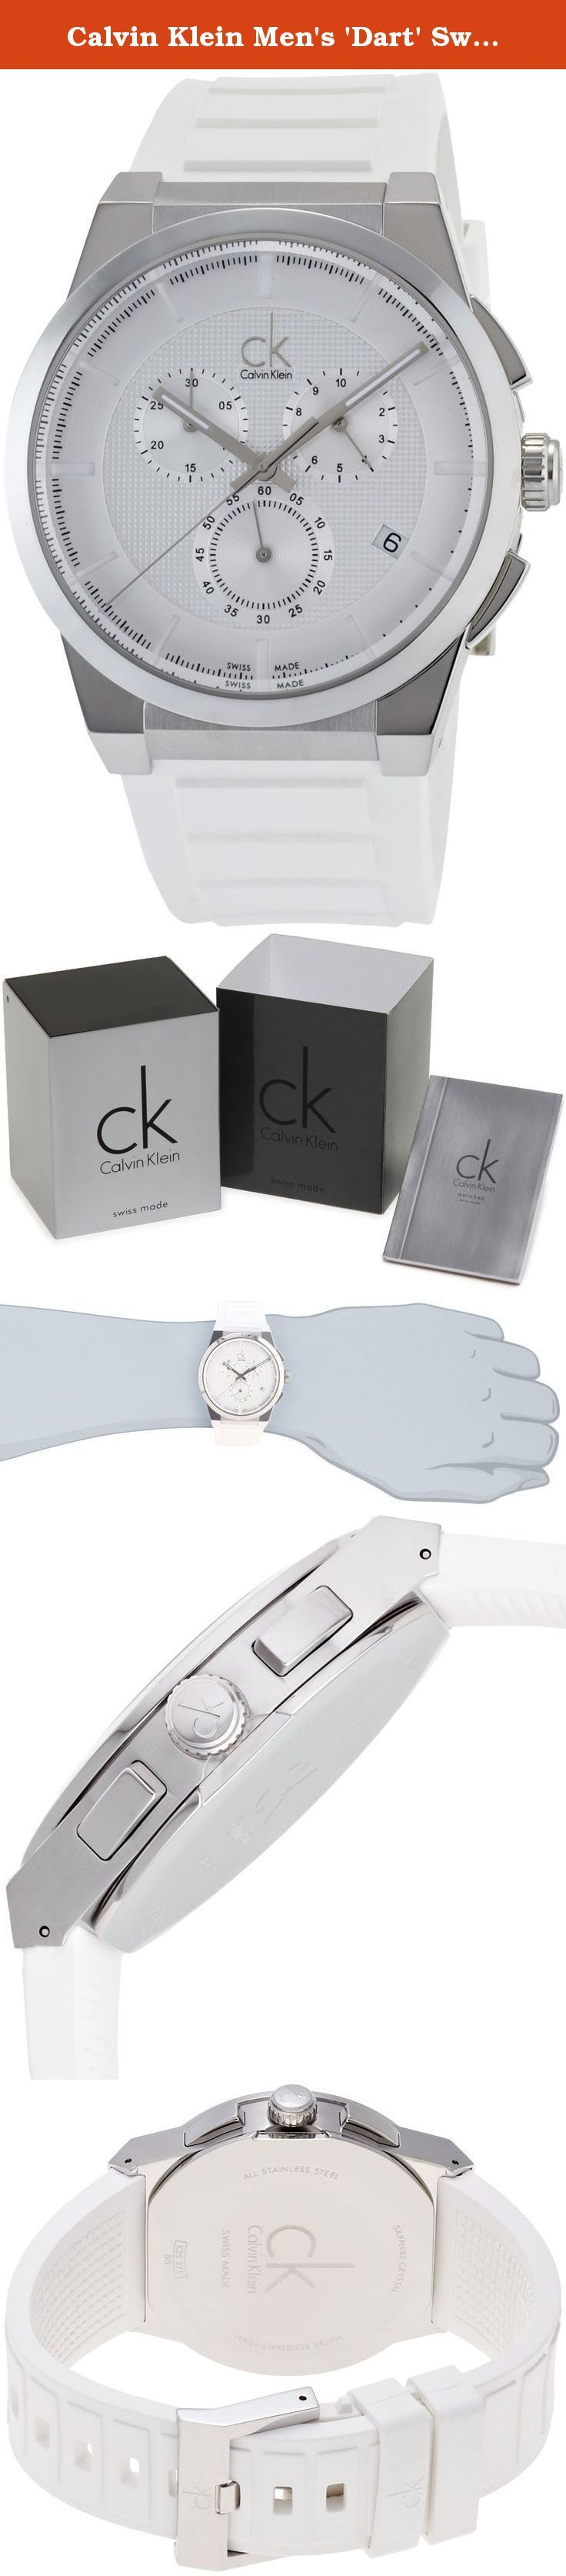 Calvin Klein Men's 'Dart' Swiss Quartz Stainless Steel and Rubber Casual Watch, Color:White (Model: K2S371L6). Stainless steel case. Rubber strap. Silver dial. Swiss quartz movement. Mineral crystal. Case 45mm. Water resistant 100 meters.